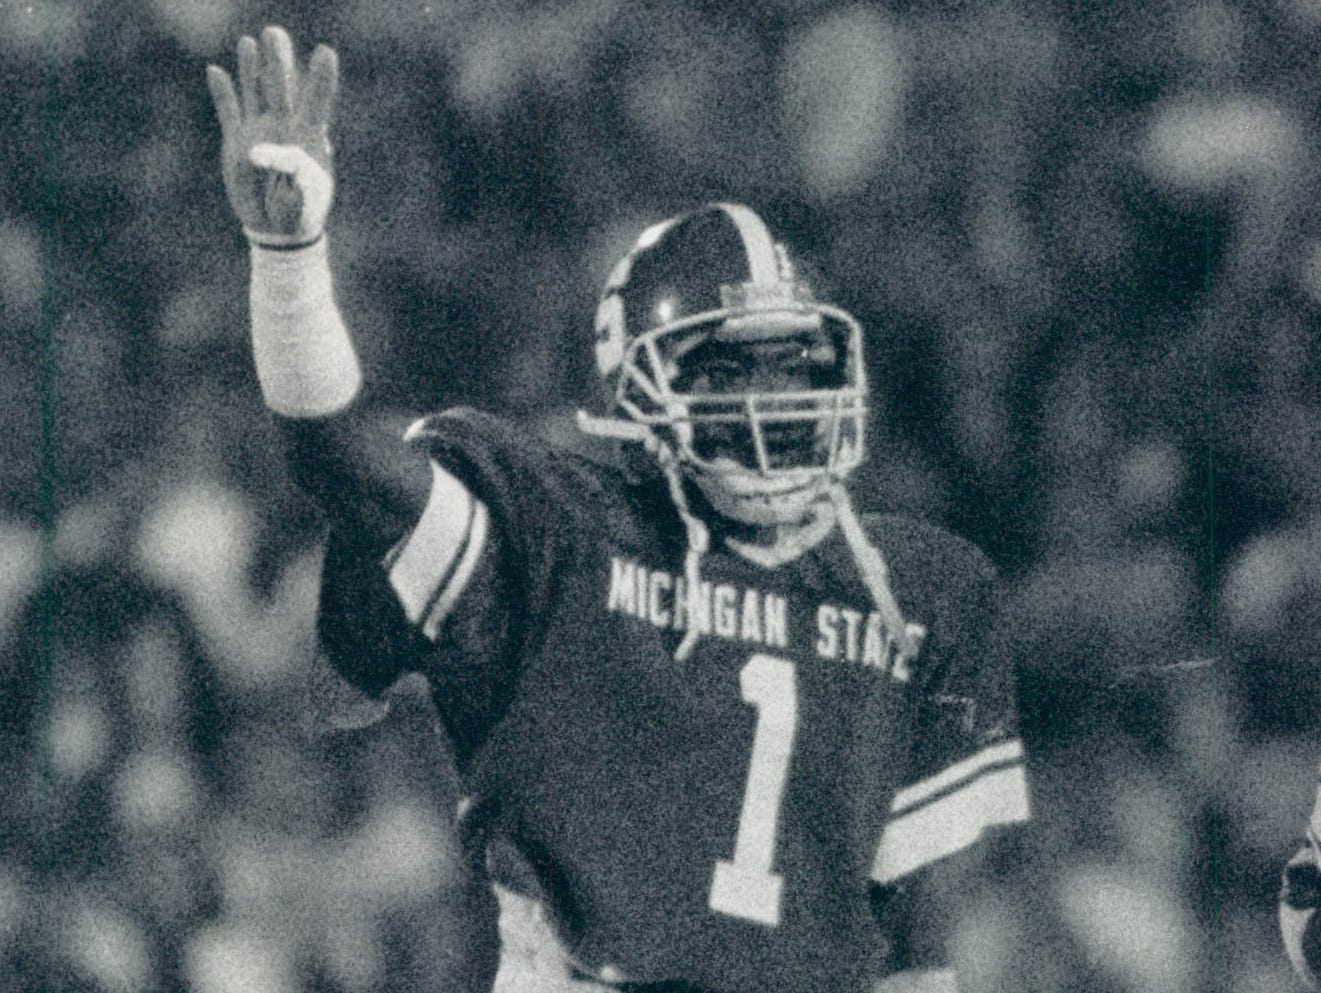 Andre Rison celebrates a play in 1982 at Spartan Stadium.